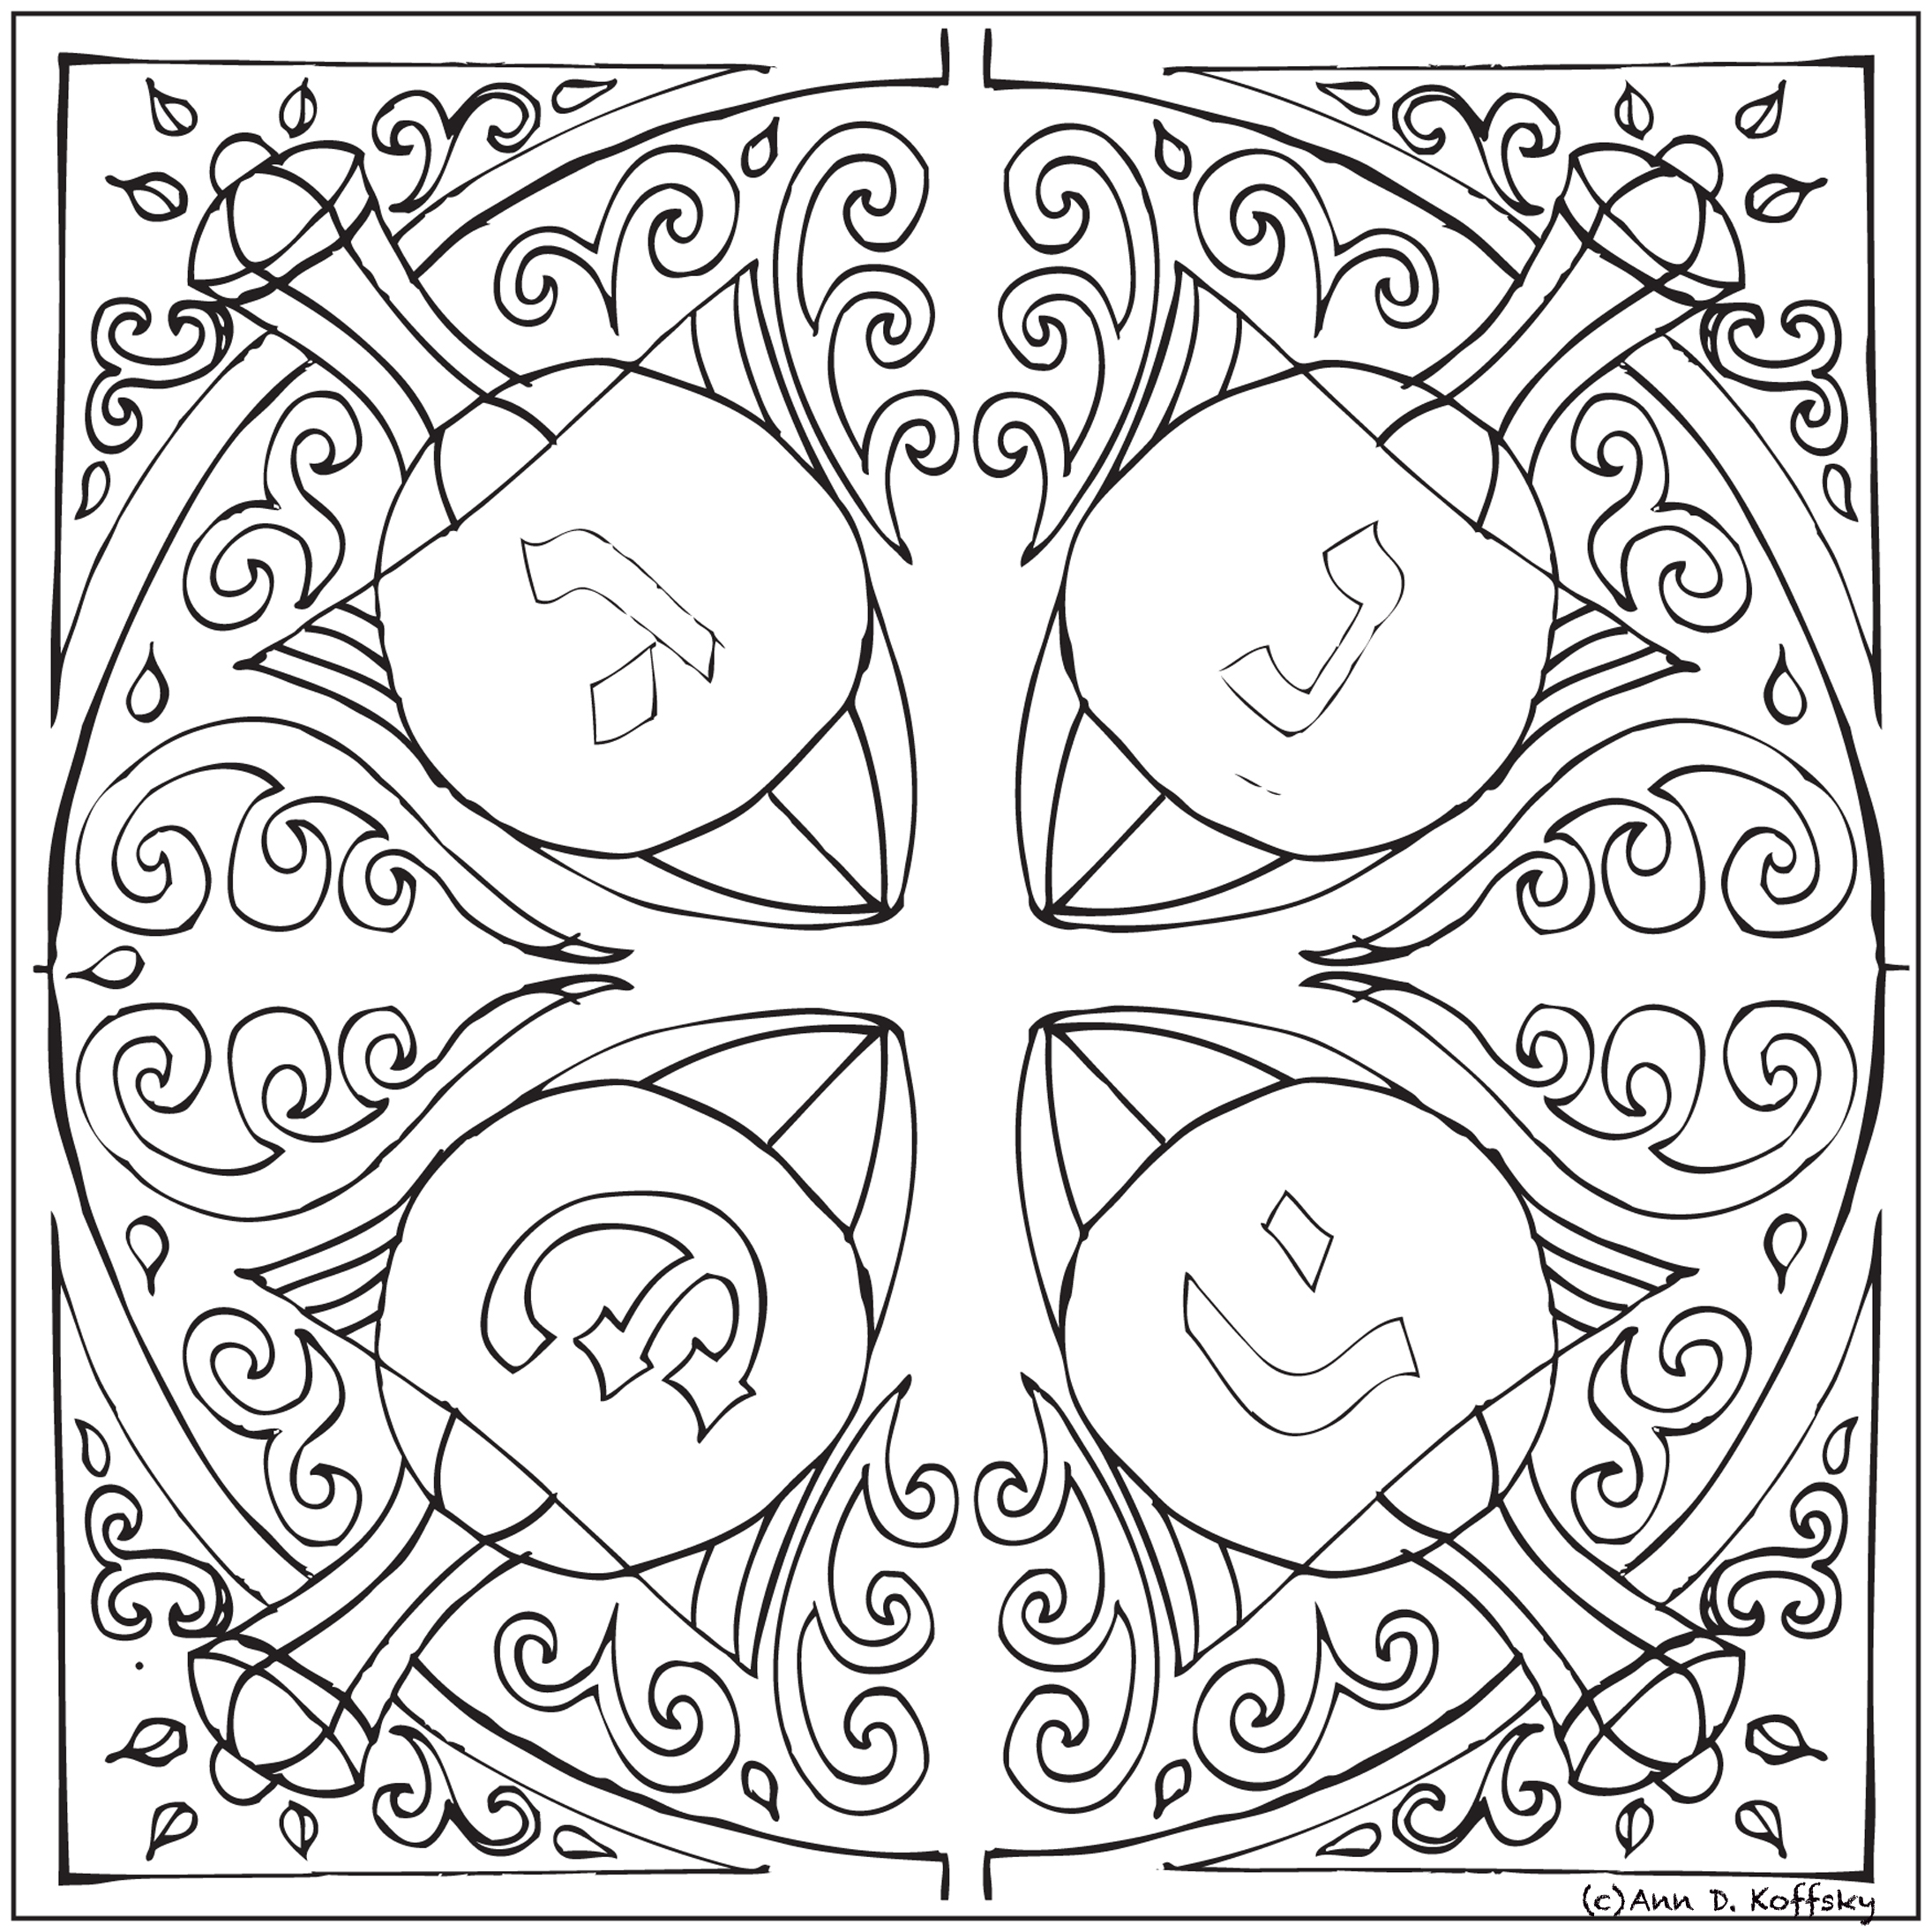 Dreidel Coloring Pages Free at GetDrawings.com | Free for personal ...